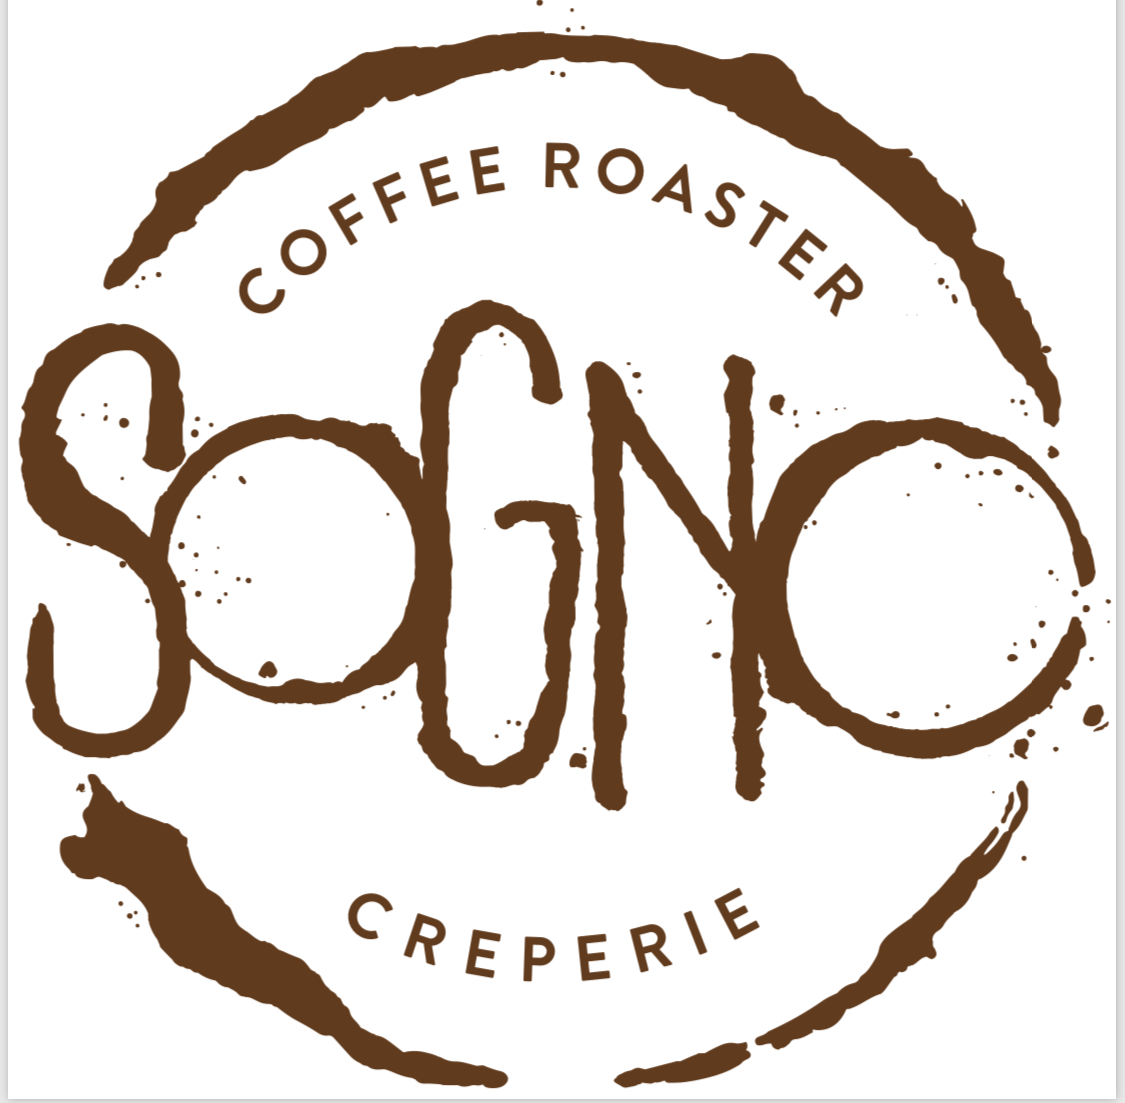 Sogno Coffeehouse